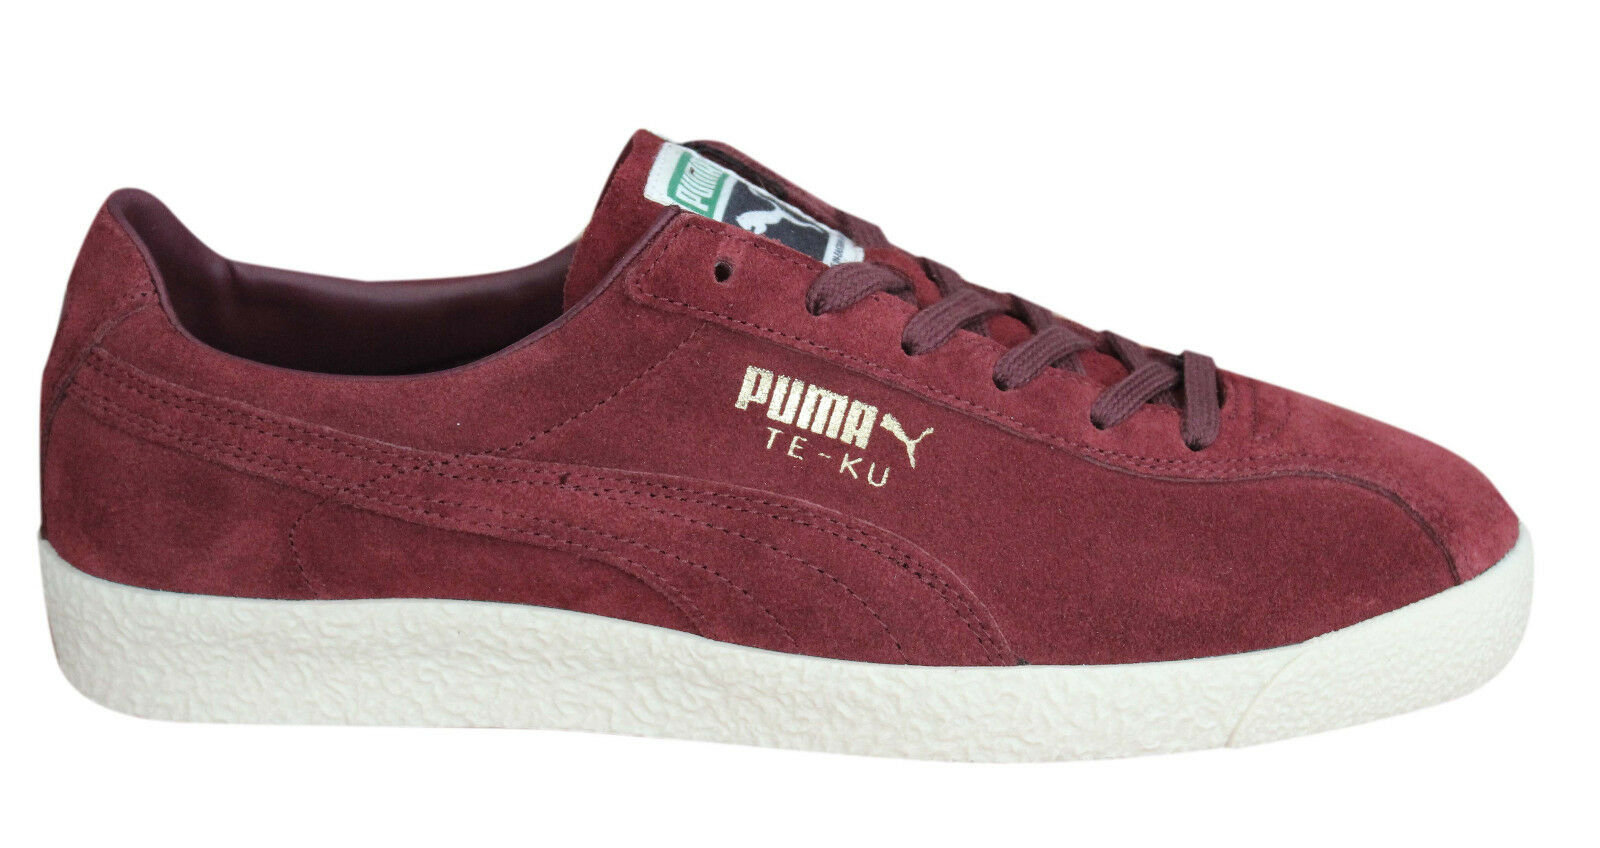 Puma Te-Ku Hommes Trainers Lace Up Chaussures Burgundy Leather 364990 03 U60